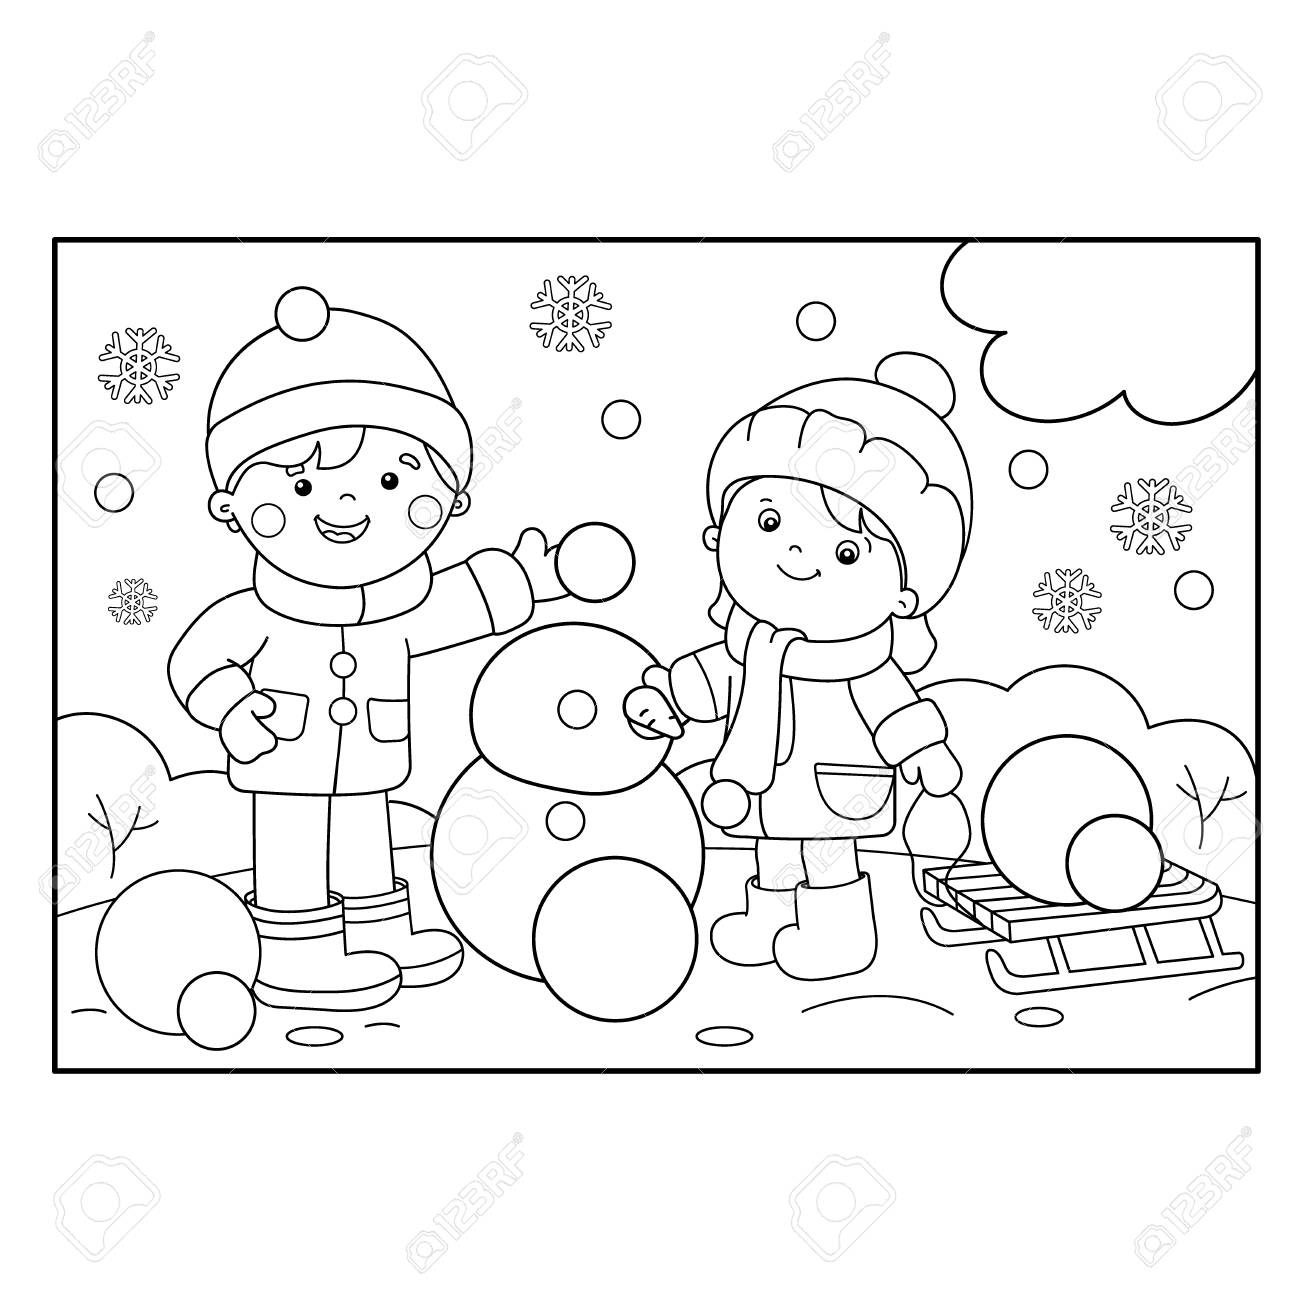 Snowman Preschool Coloring Pages Winter Free #3718 Preschool ... | 1300x1300